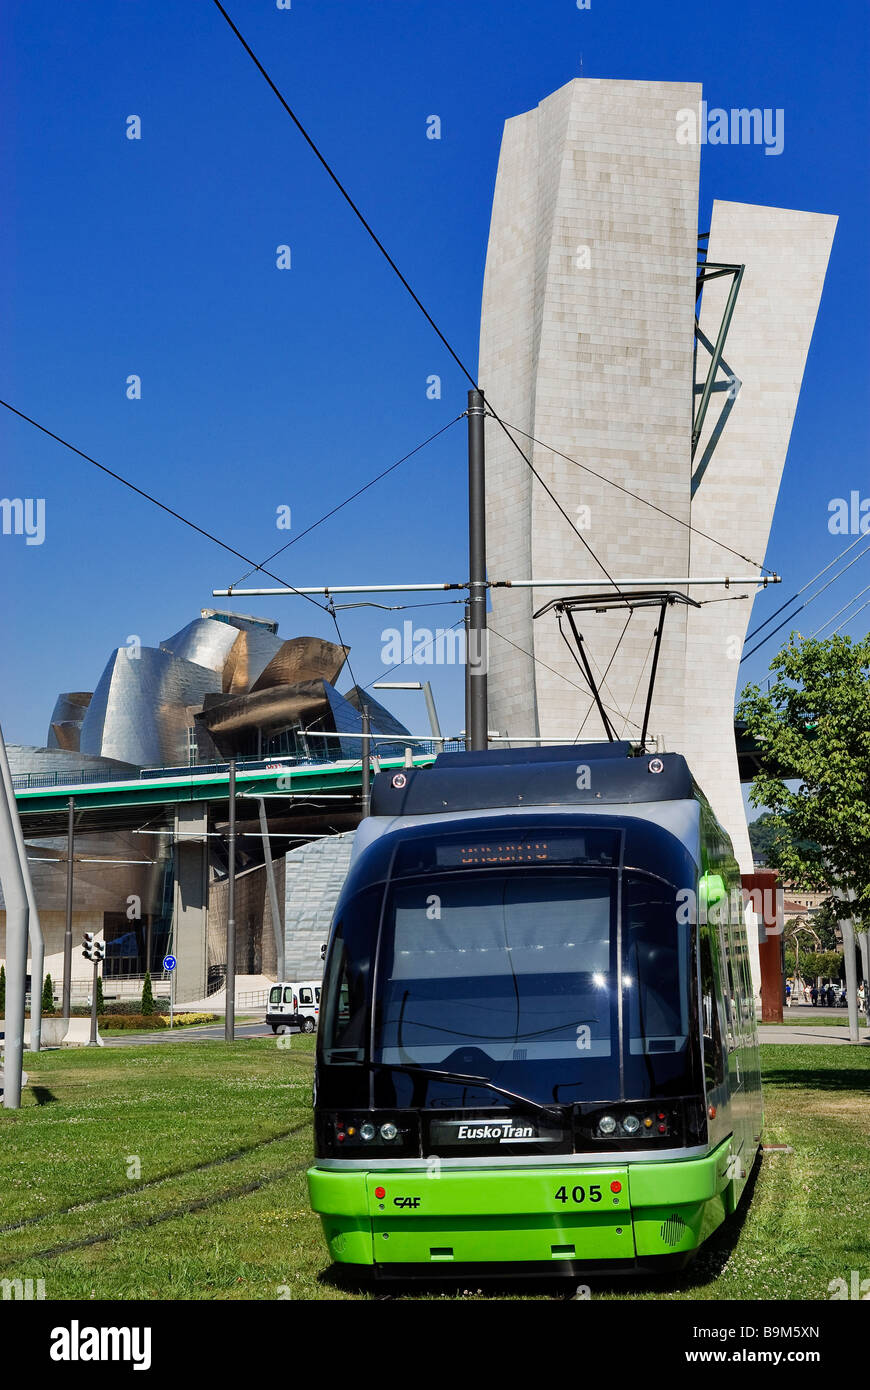 Spain, Biscaye province, Spanish Basque Country, Bilbao, the tram (Euskotren) - Stock Image